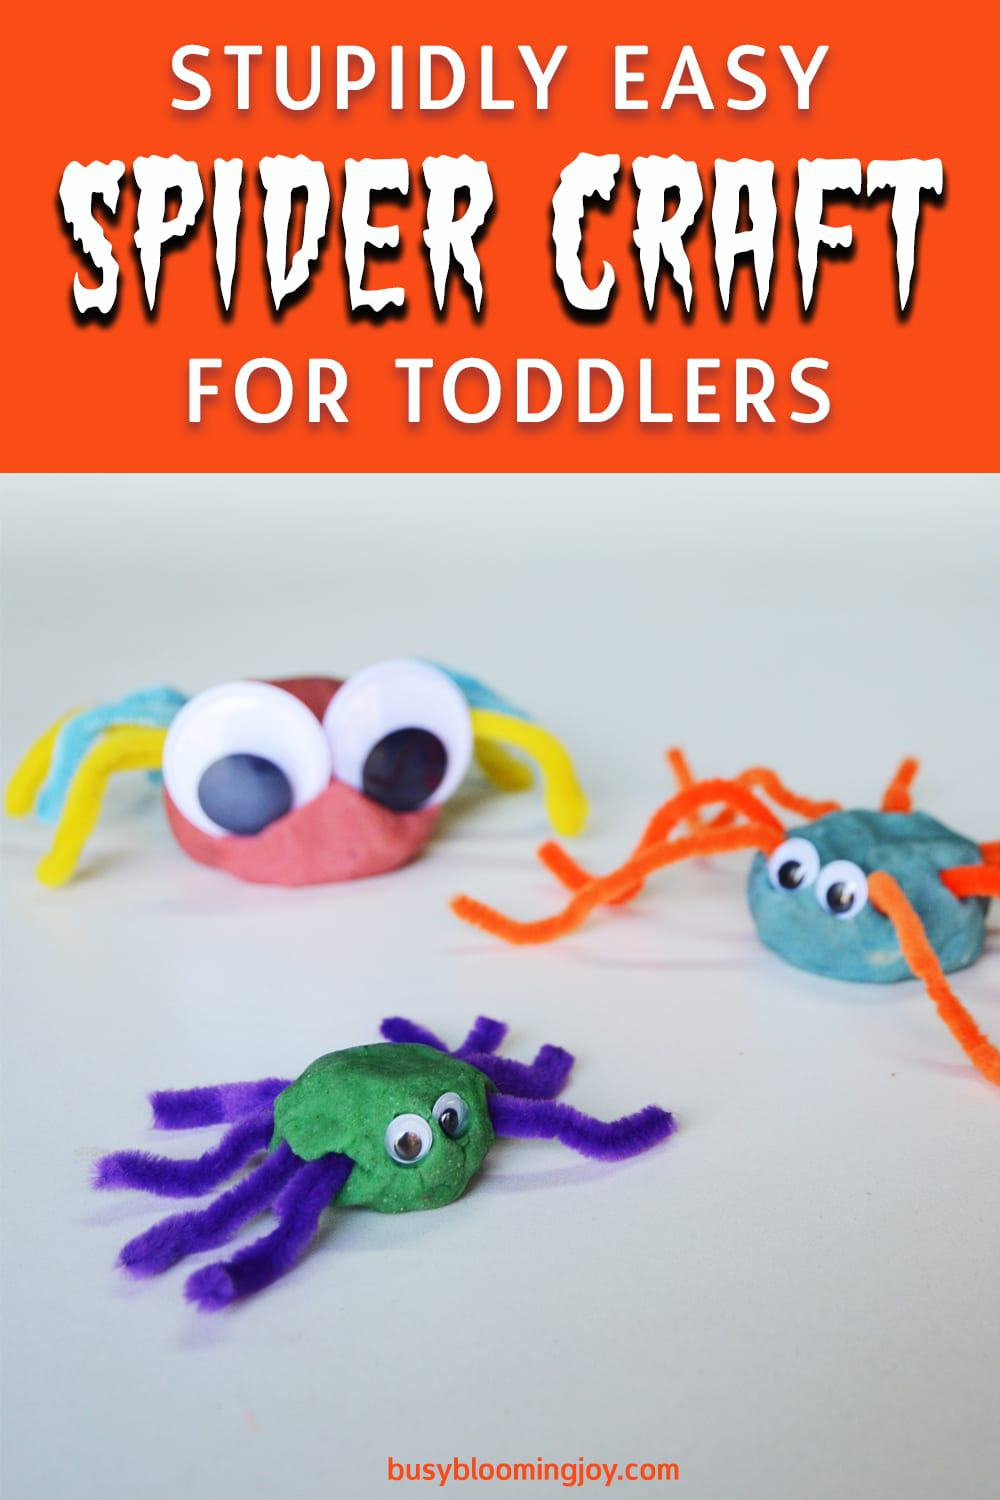 STUPIDLY EASY pipe cleaner spider craft for toddlers (no prep & no mess!)